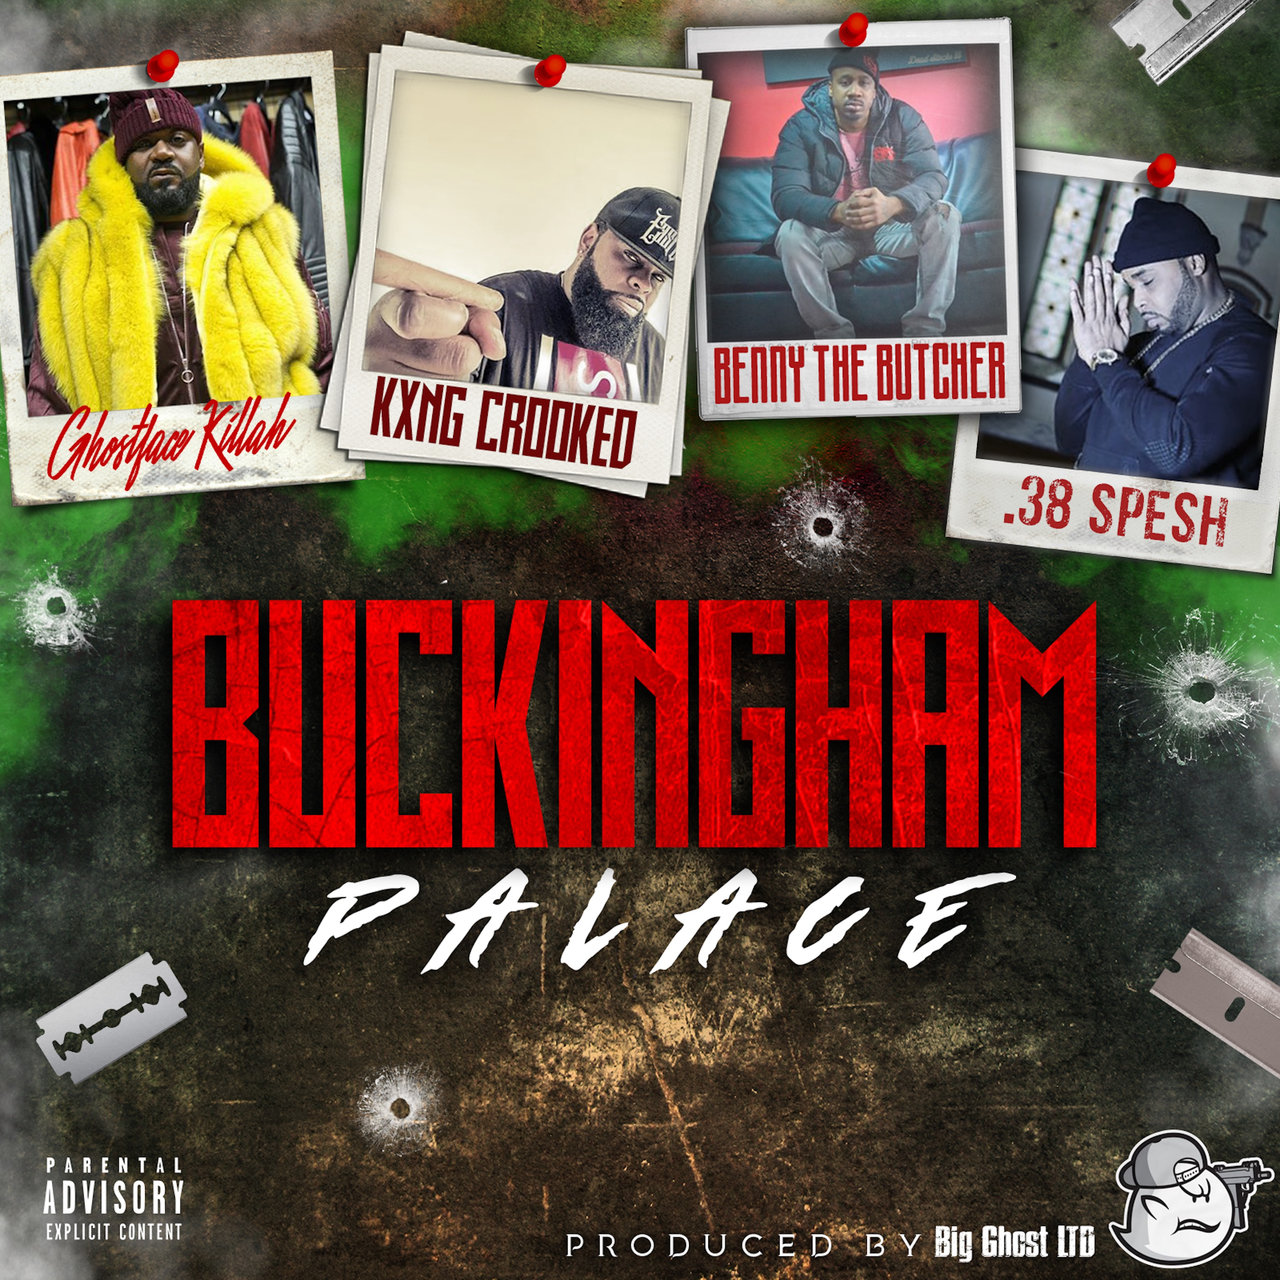 Buckingham Palace (feat. Kxng Crooked, Benny the Butcher & 38 Spesh)